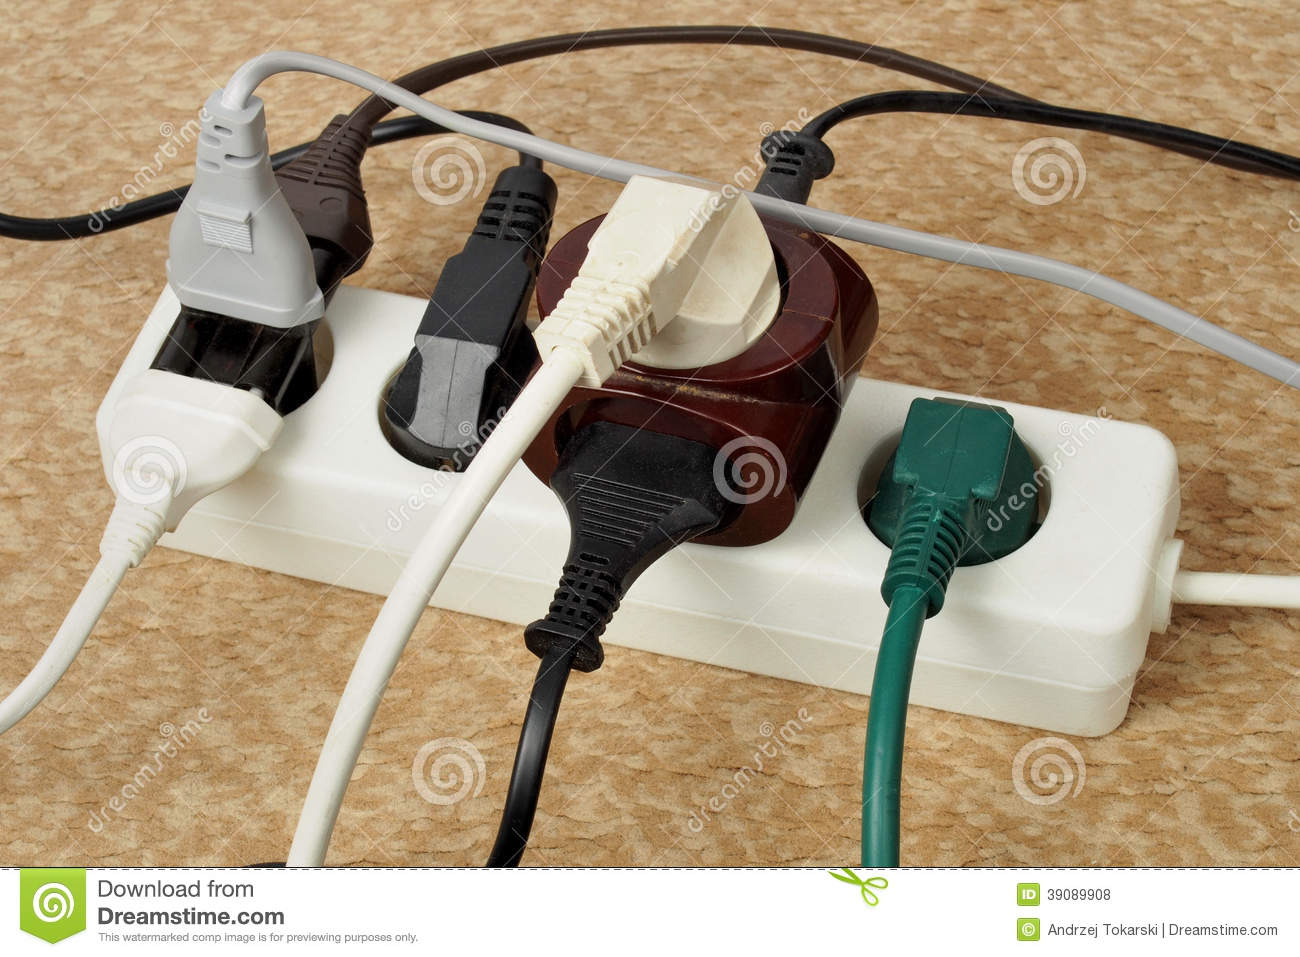 Animation Extension Lead : Overloaded extension cord stock photo image